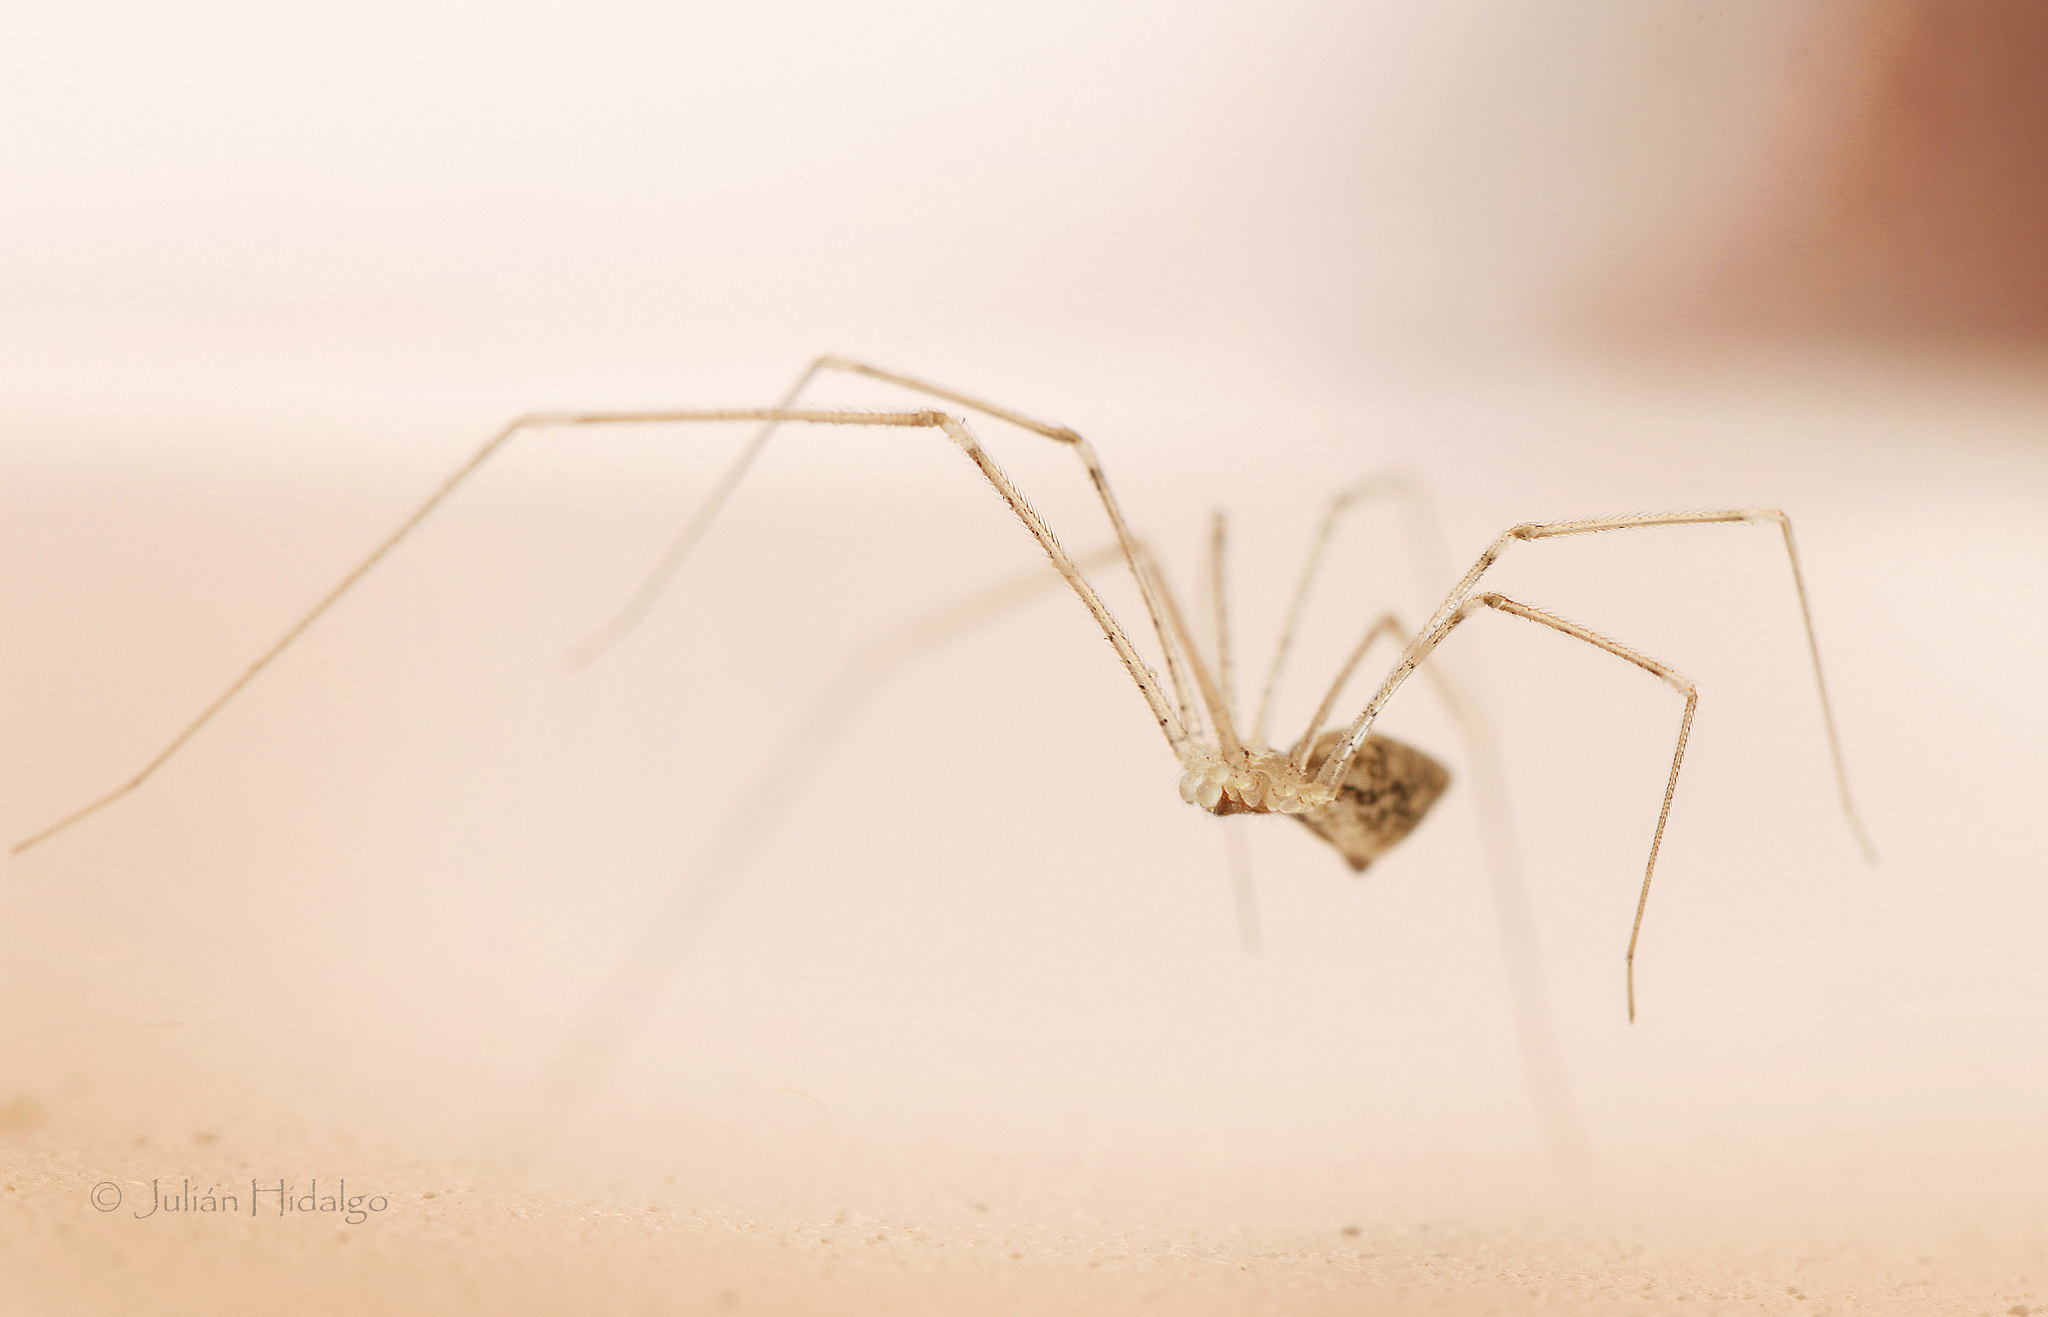 Photograph Long legs monster by Julián Madrid on 500px